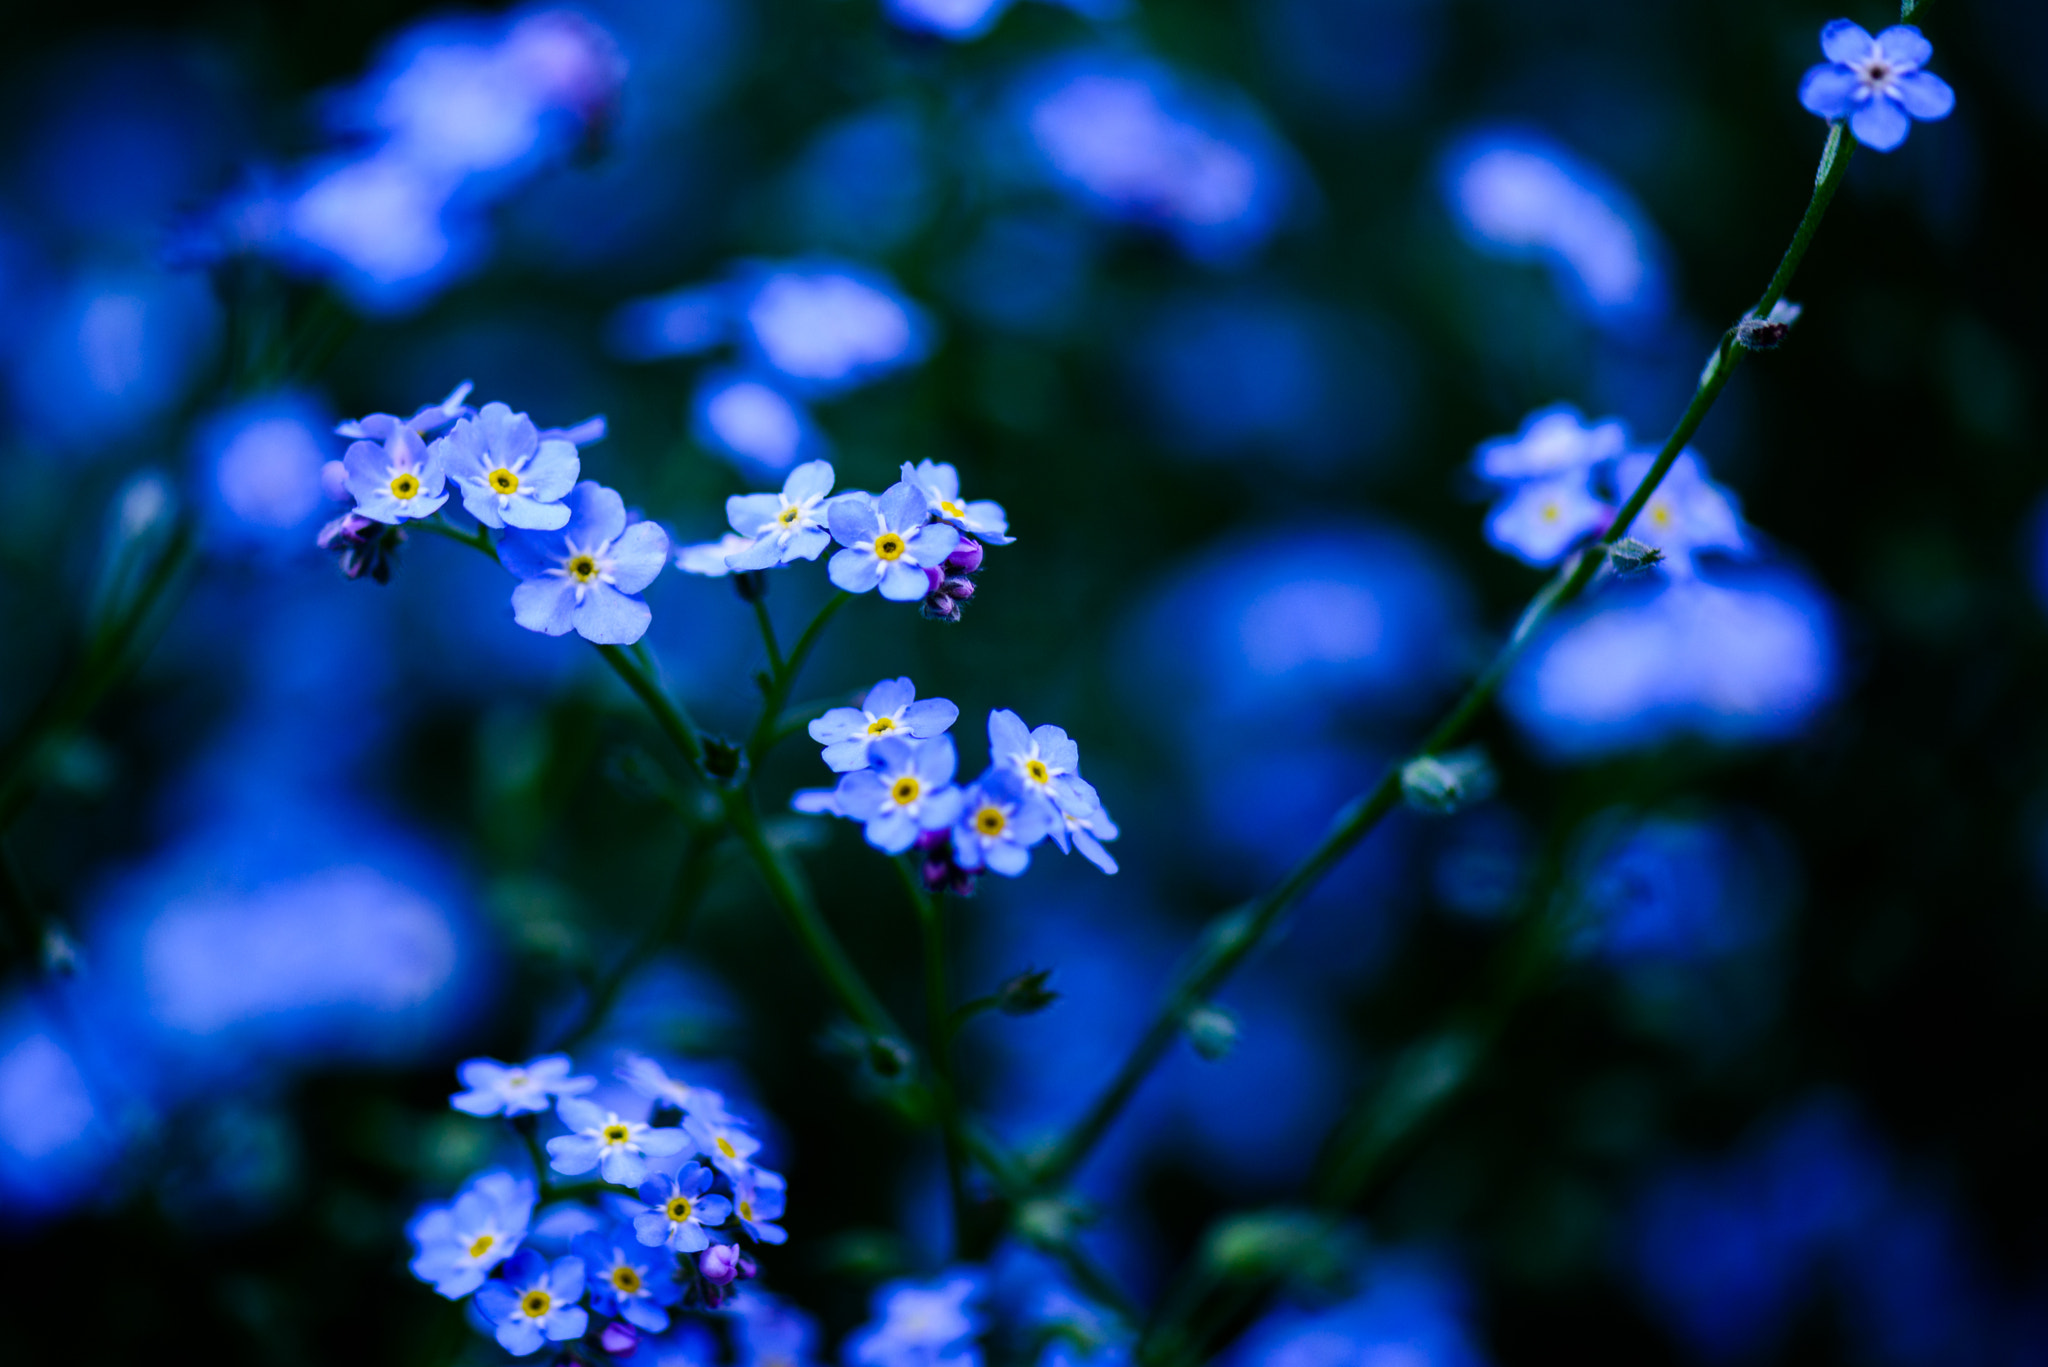 Photograph Forget-Me-Not by A. Mills on 500px